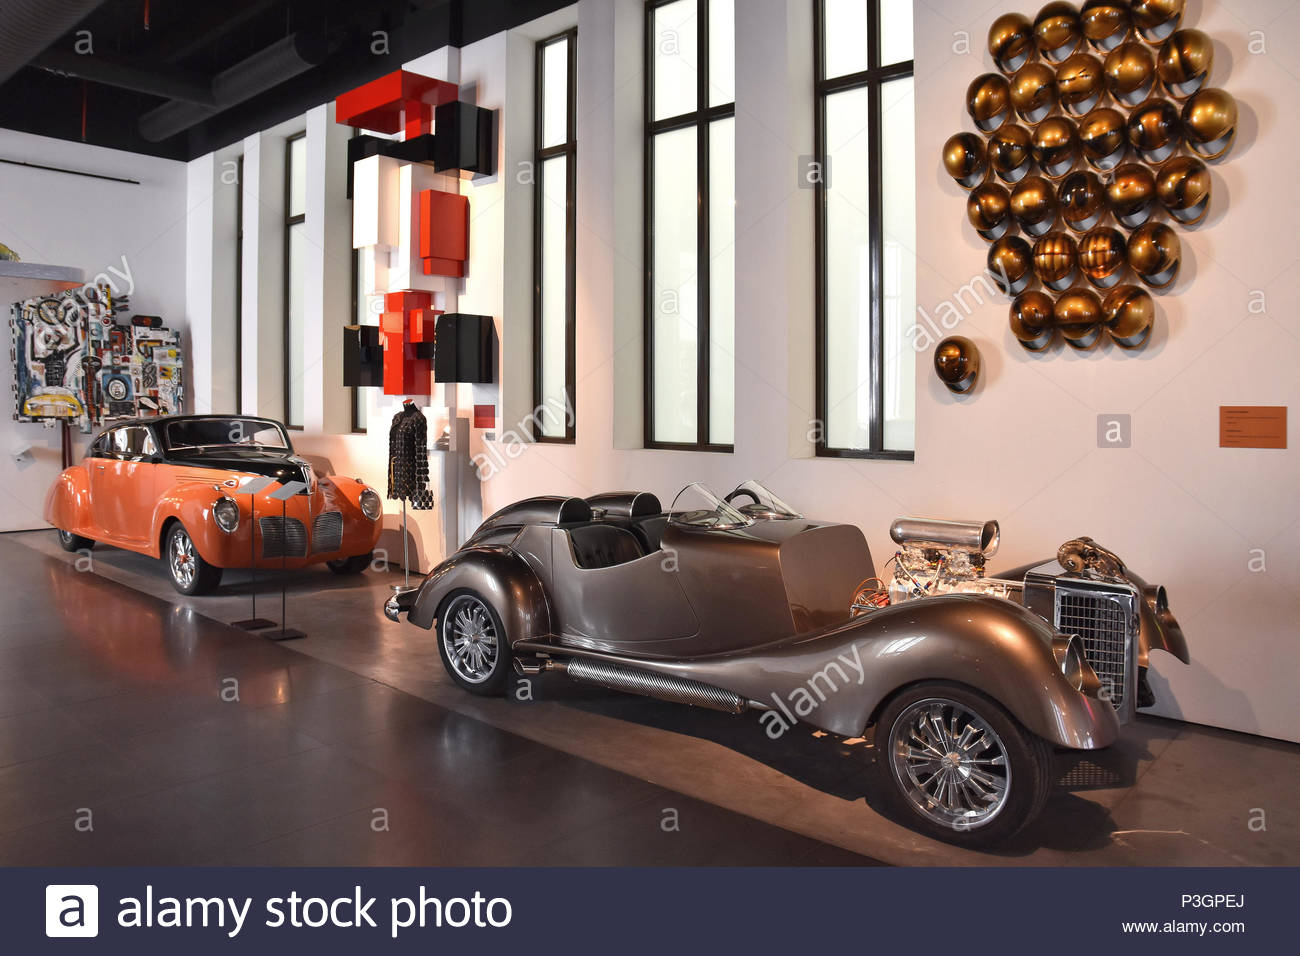 'The Bomb' designed by Maga Collection inspired by competition cars of the 50s with 530 hp engine displayed at Museum of Automobiles in Malaga Spain. - Stock Image